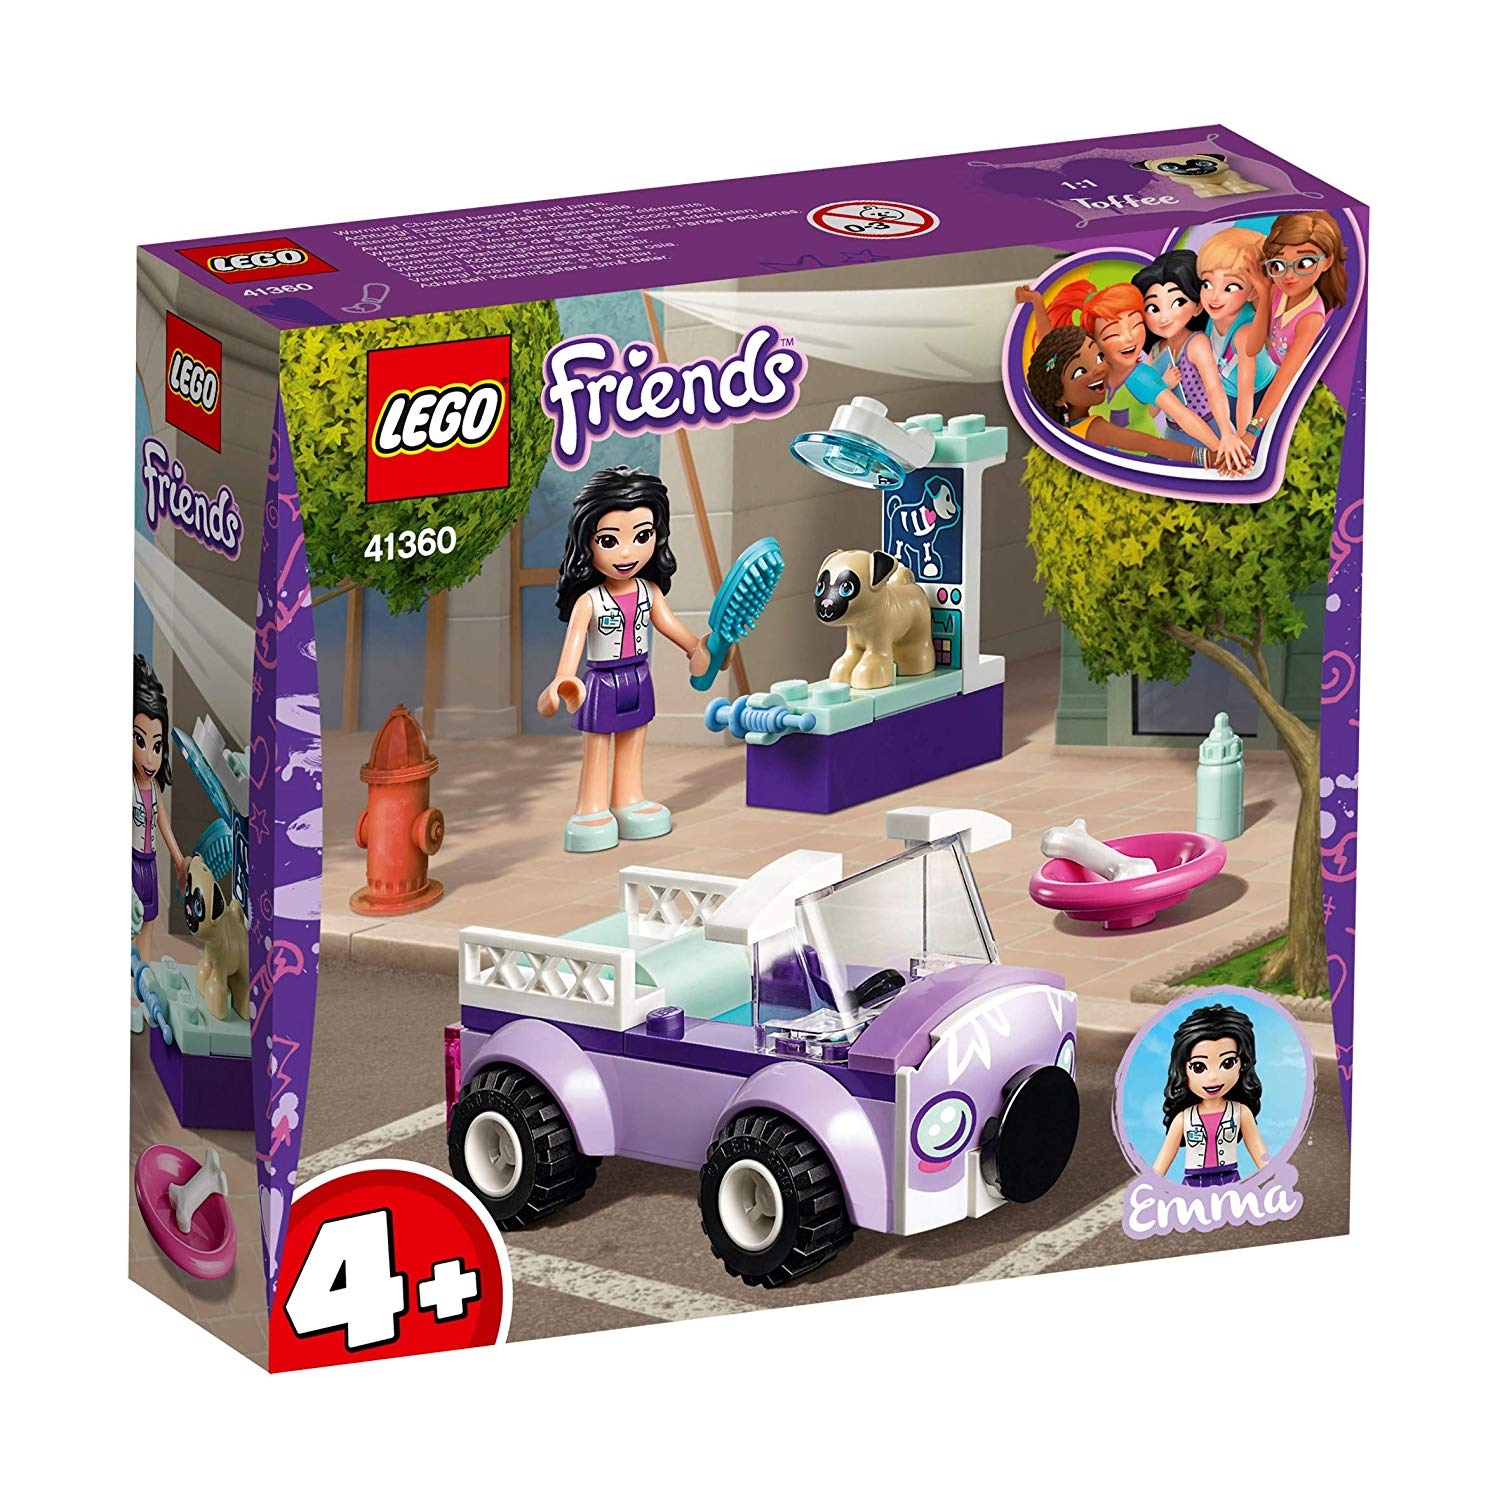 41360 Lego Friends La clinica veterinaria mobile di Emma